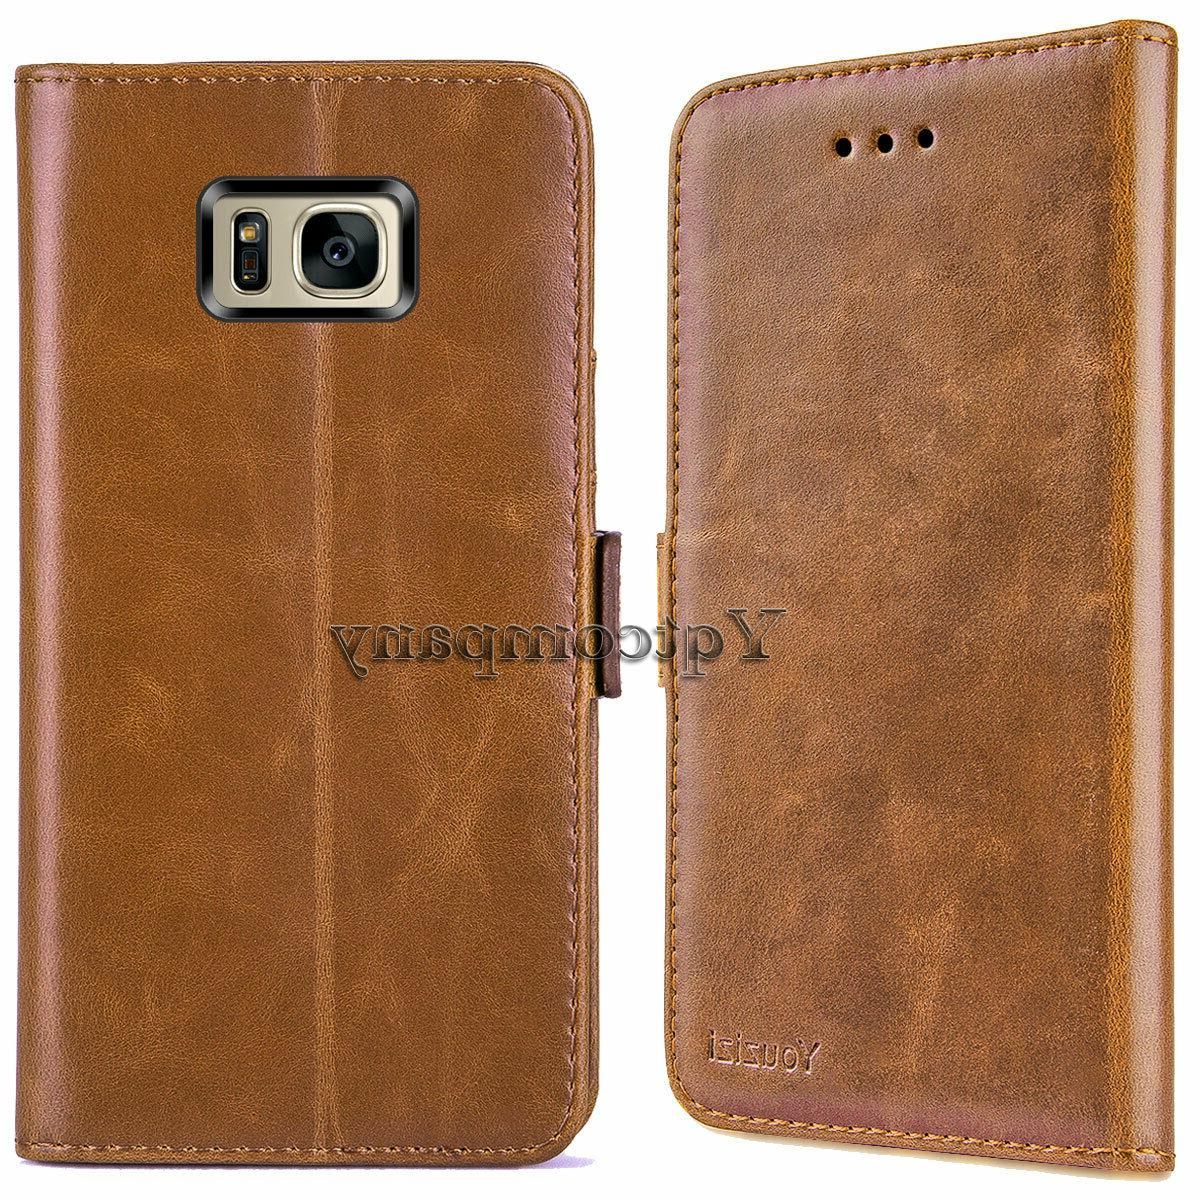 For Galaxy S7 Edge Case Leather Card Flip Cover